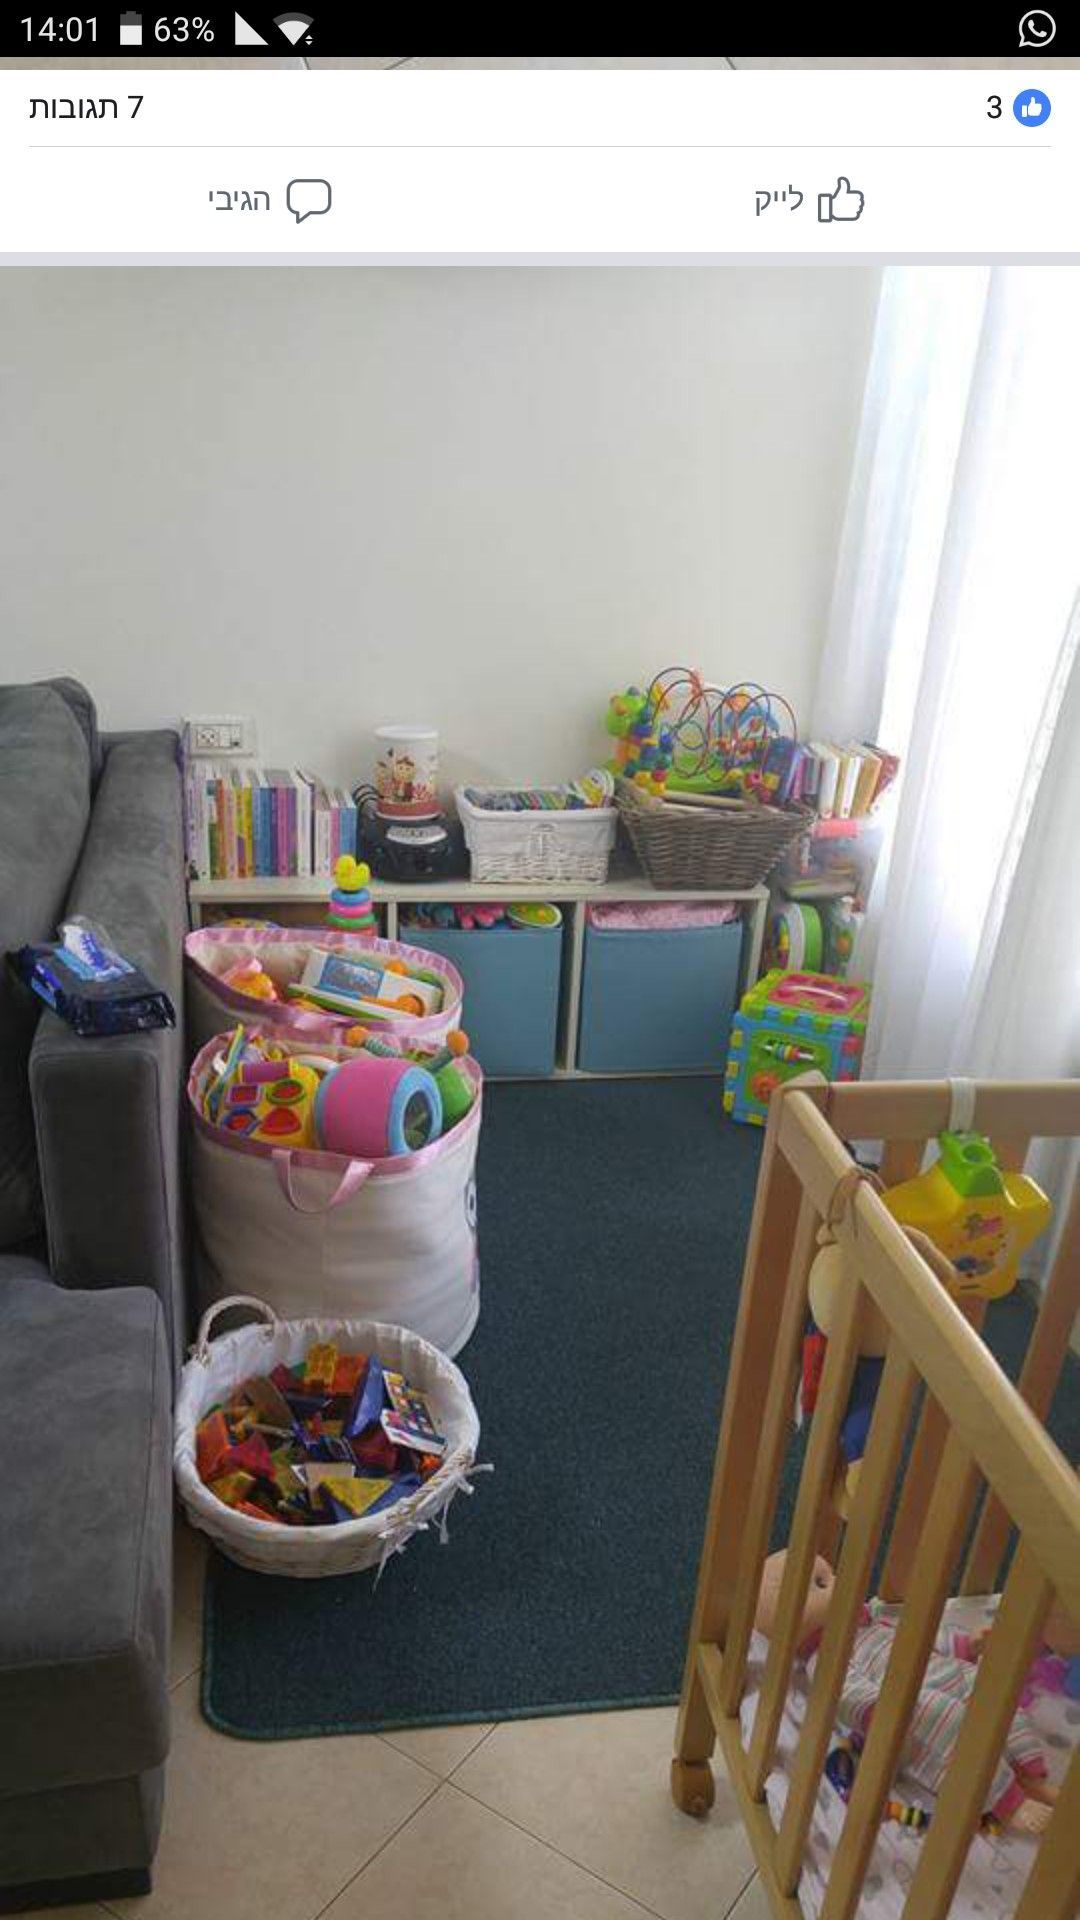 living in a one bedroom apartment with a toddler on small space play area idea baby play areas living room playroom play corner in 2021 living room playroom baby play areas kids play corner living room playroom baby play areas